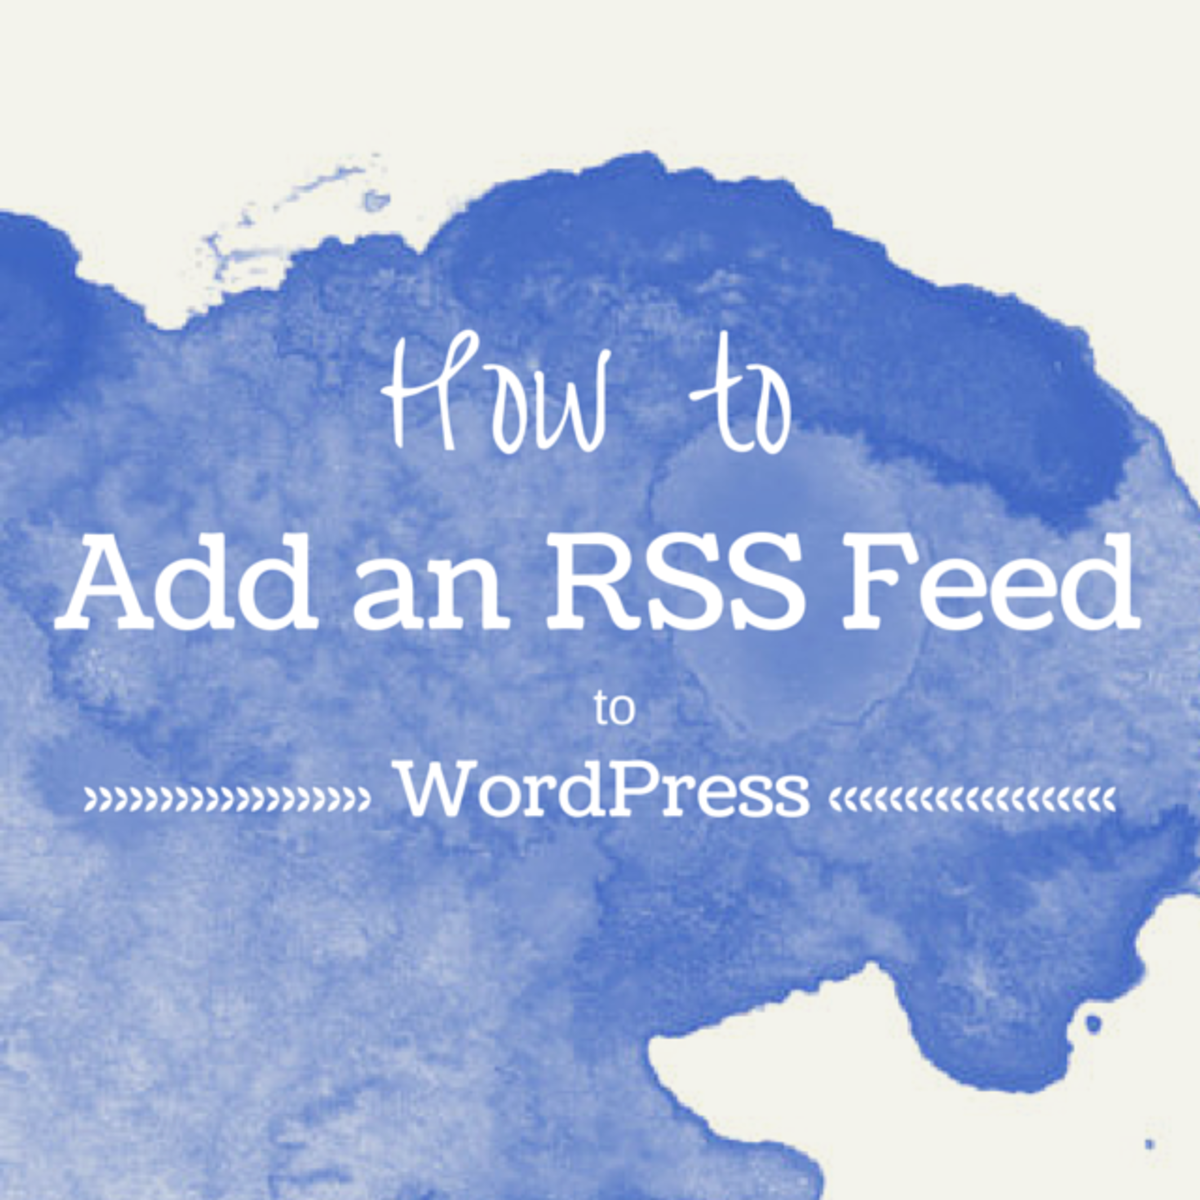 How to Add an RSS Feed to a WordPress Blog